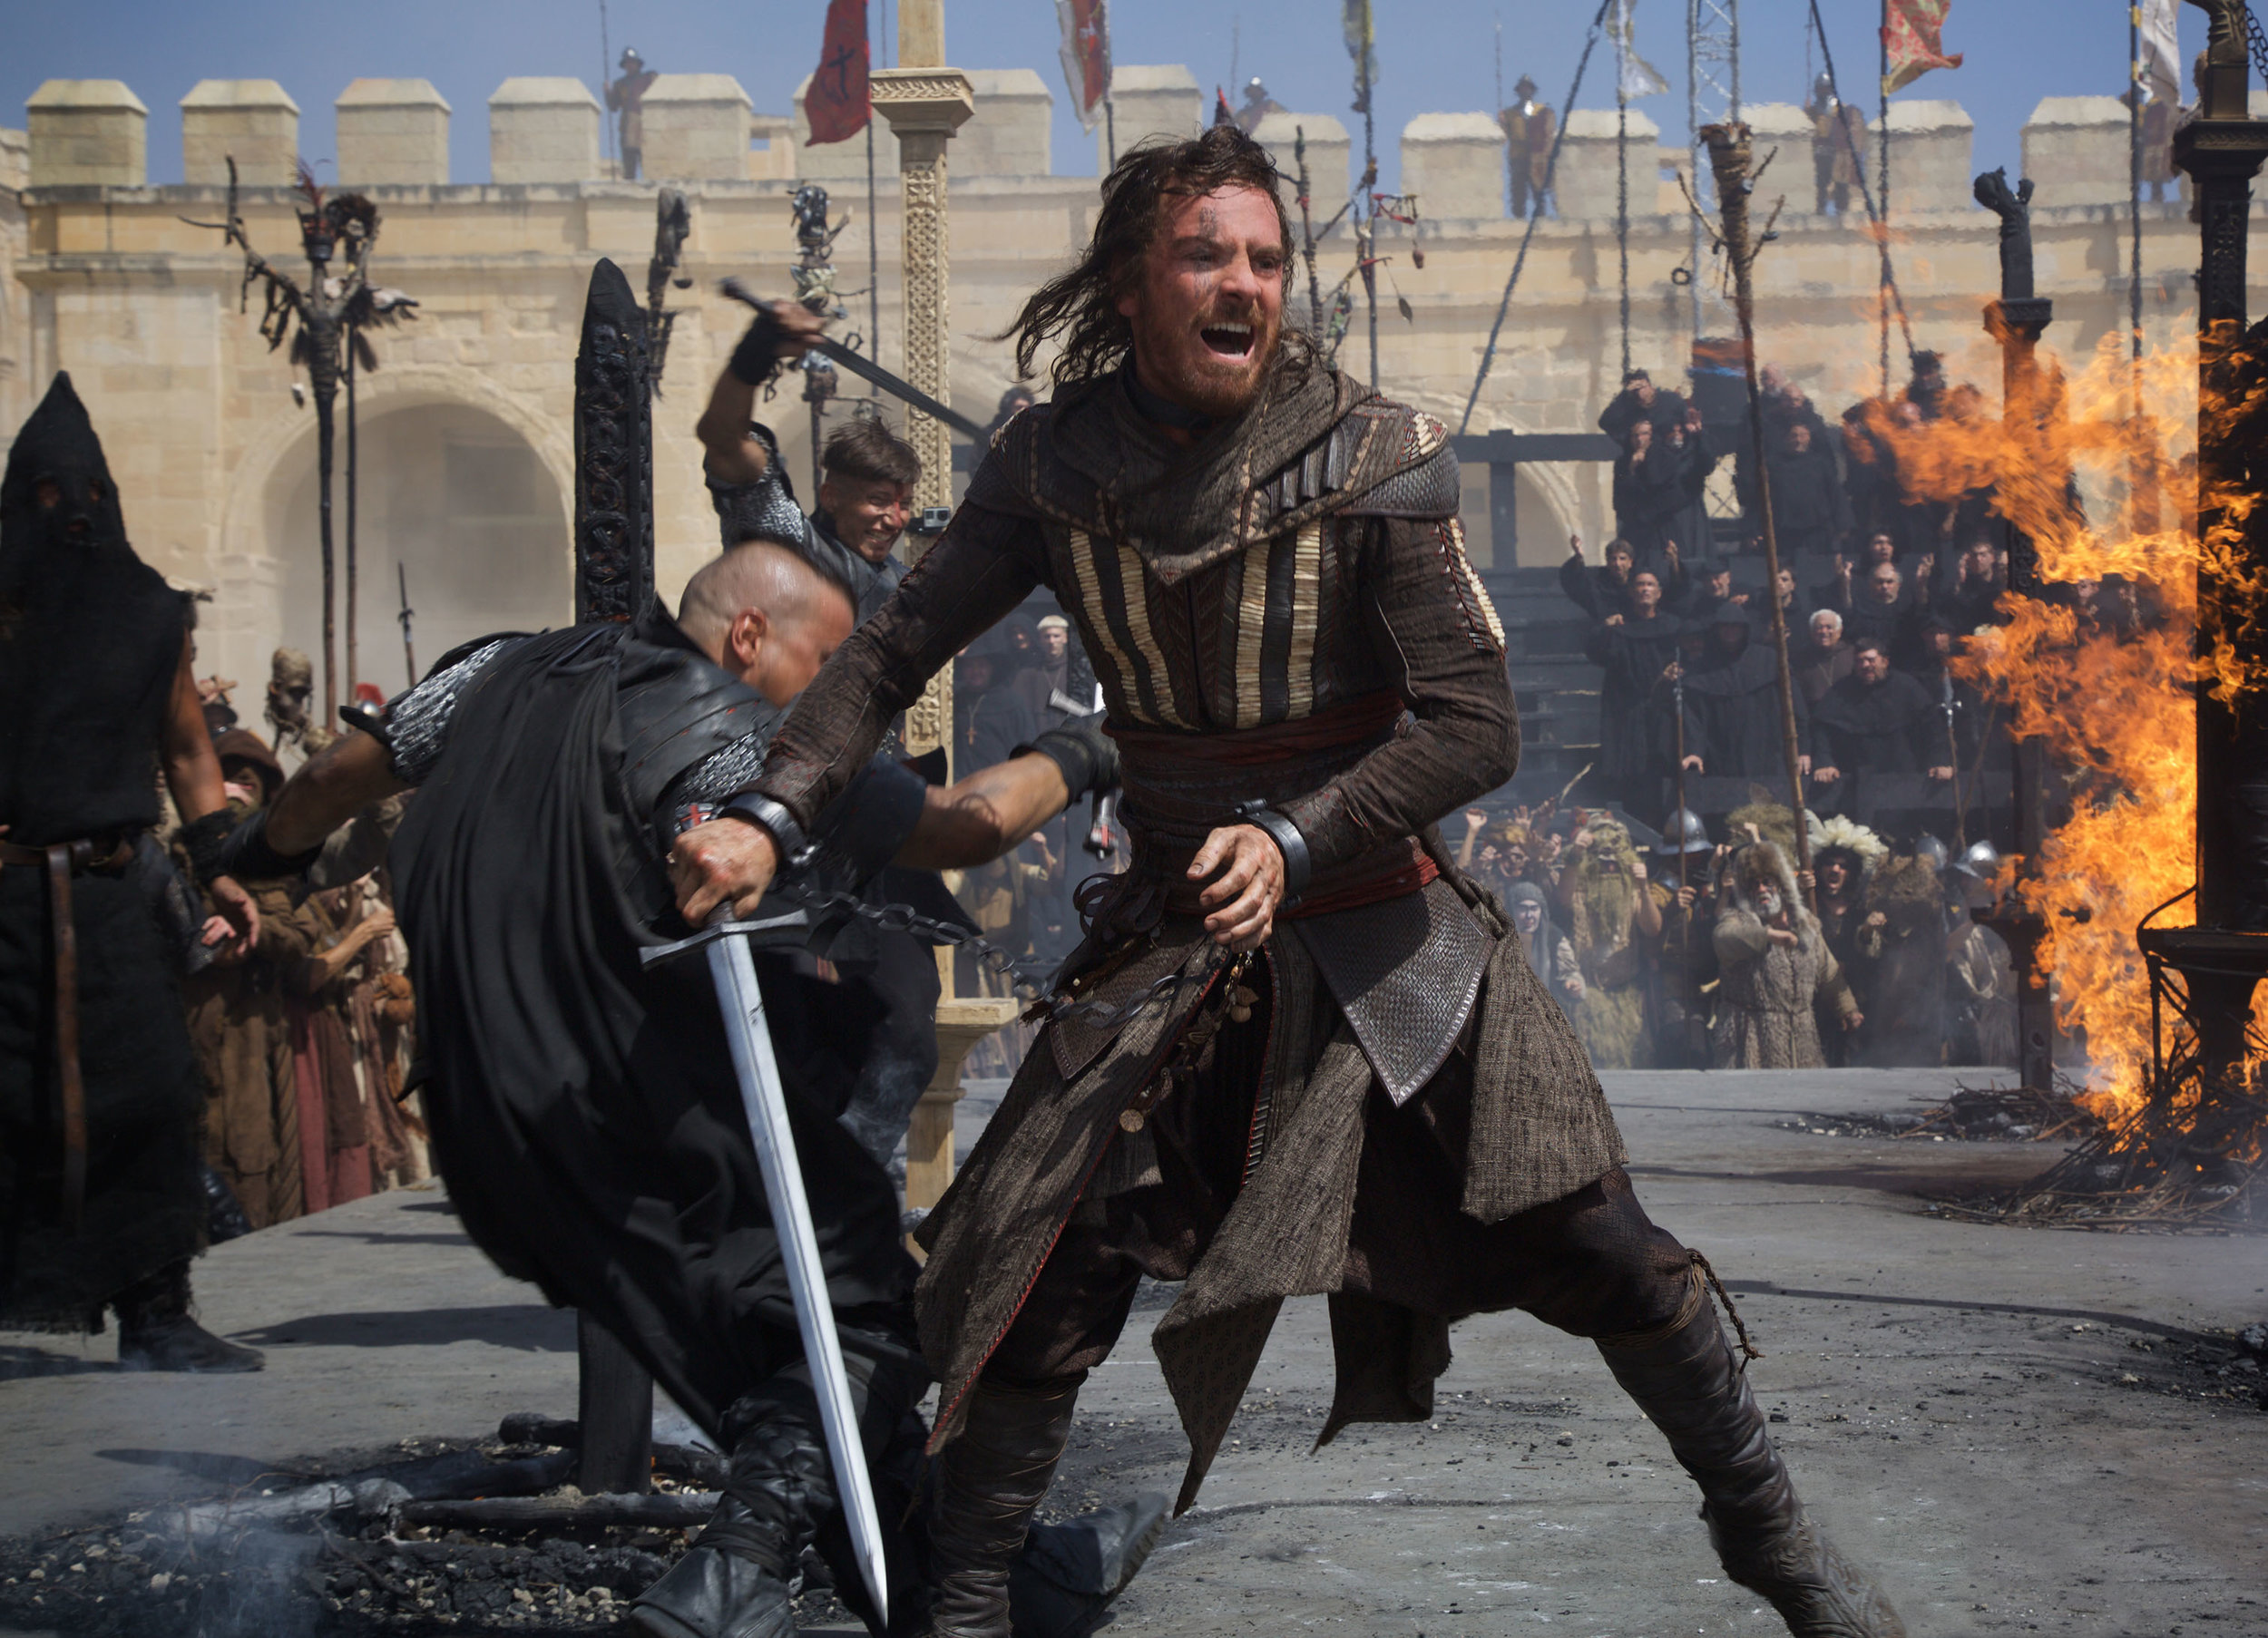 Michael Fassbender stars in 'Assassin's Creed', directed by Justin Kurzel.